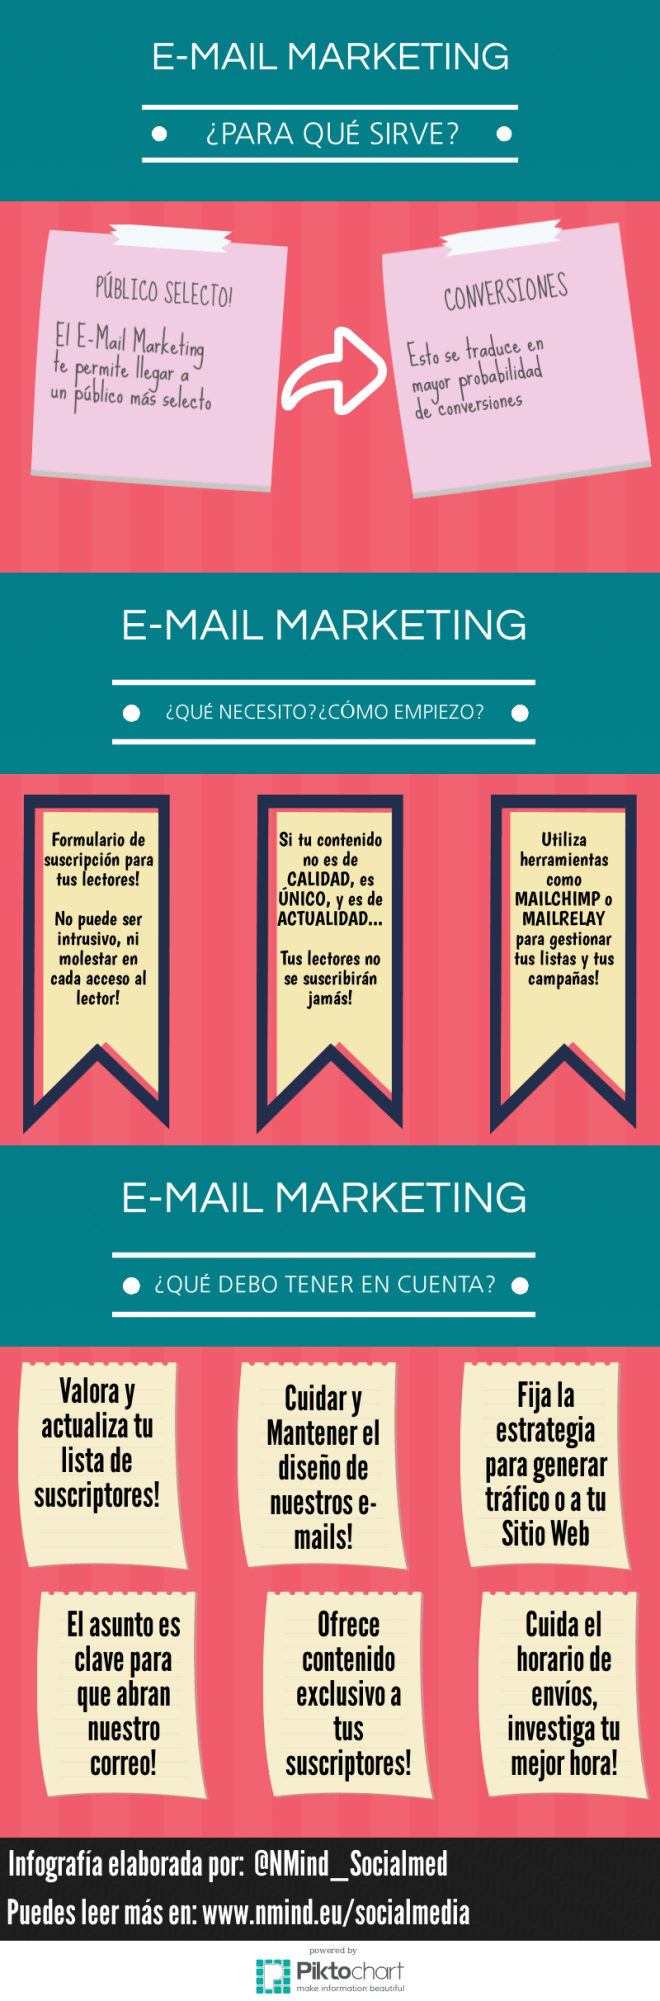 Email marketing: ¿para qué sirve?